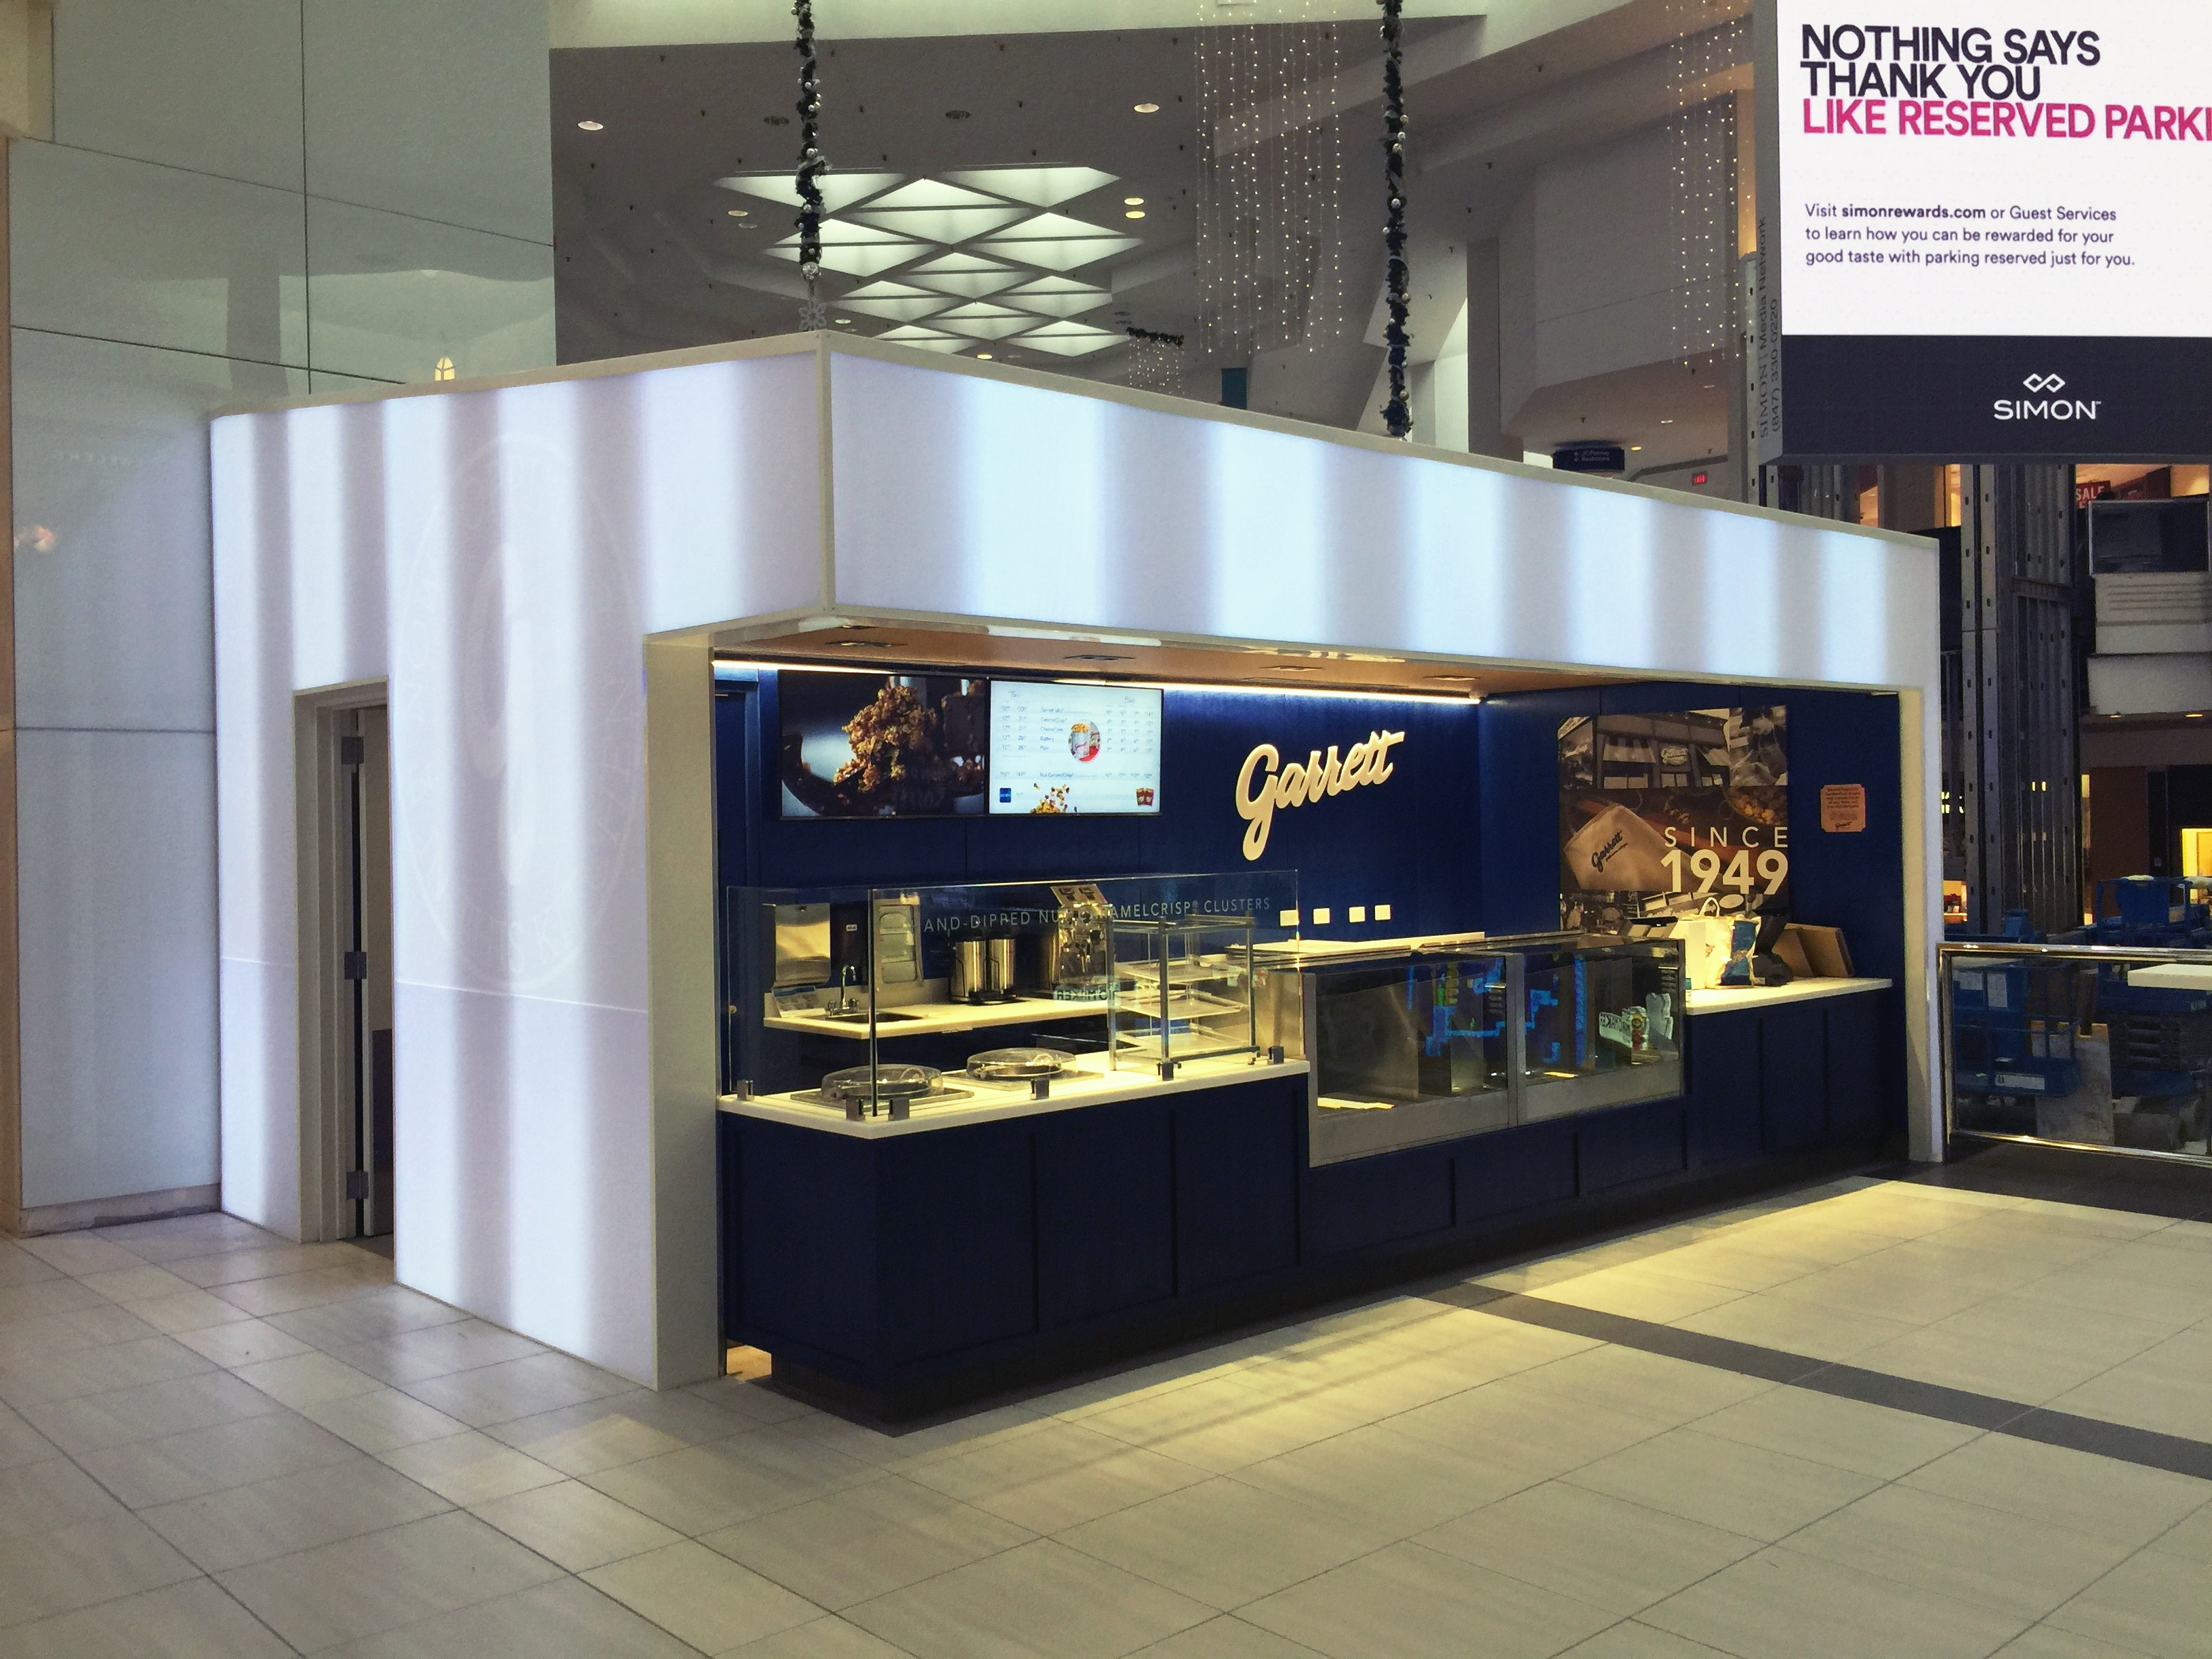 Panelite Translucent Honeycomb Panels Backlit Partitions Exhibit Booth Garrett Popcorn Shops quick to install 2